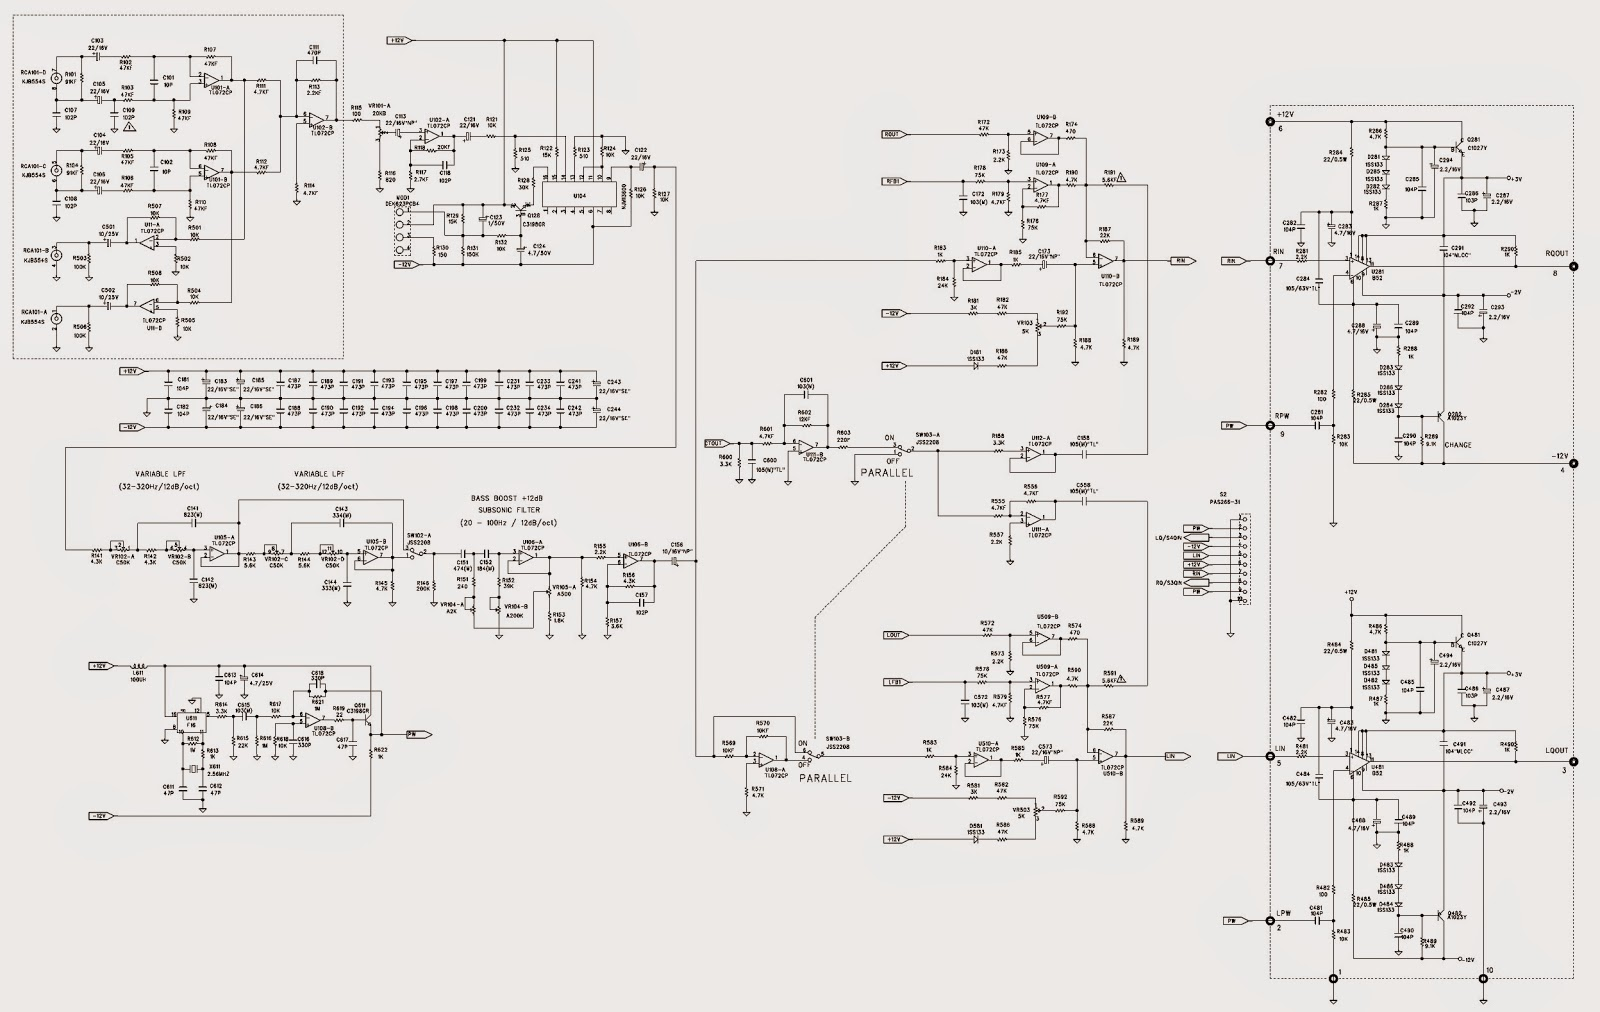 Jbl Bpx22001 2 Channel Power Amplifier Car Wiring Diagram And